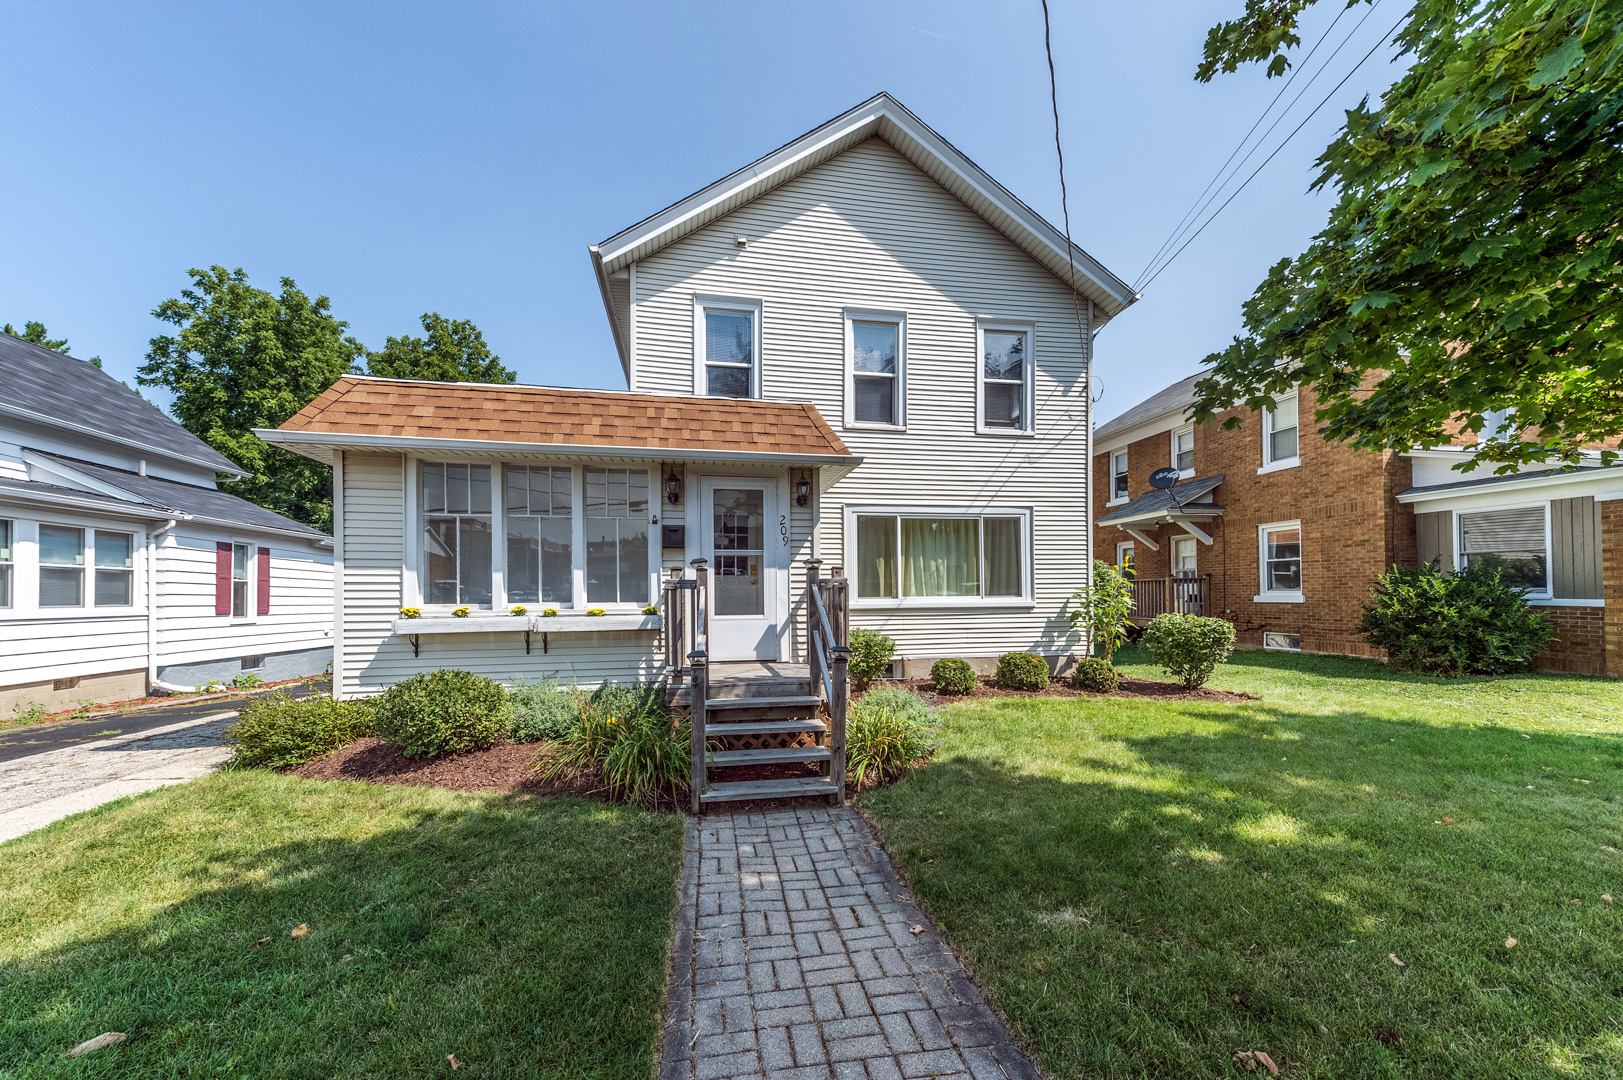 209 West Exchange Street Sycamore Il 60178